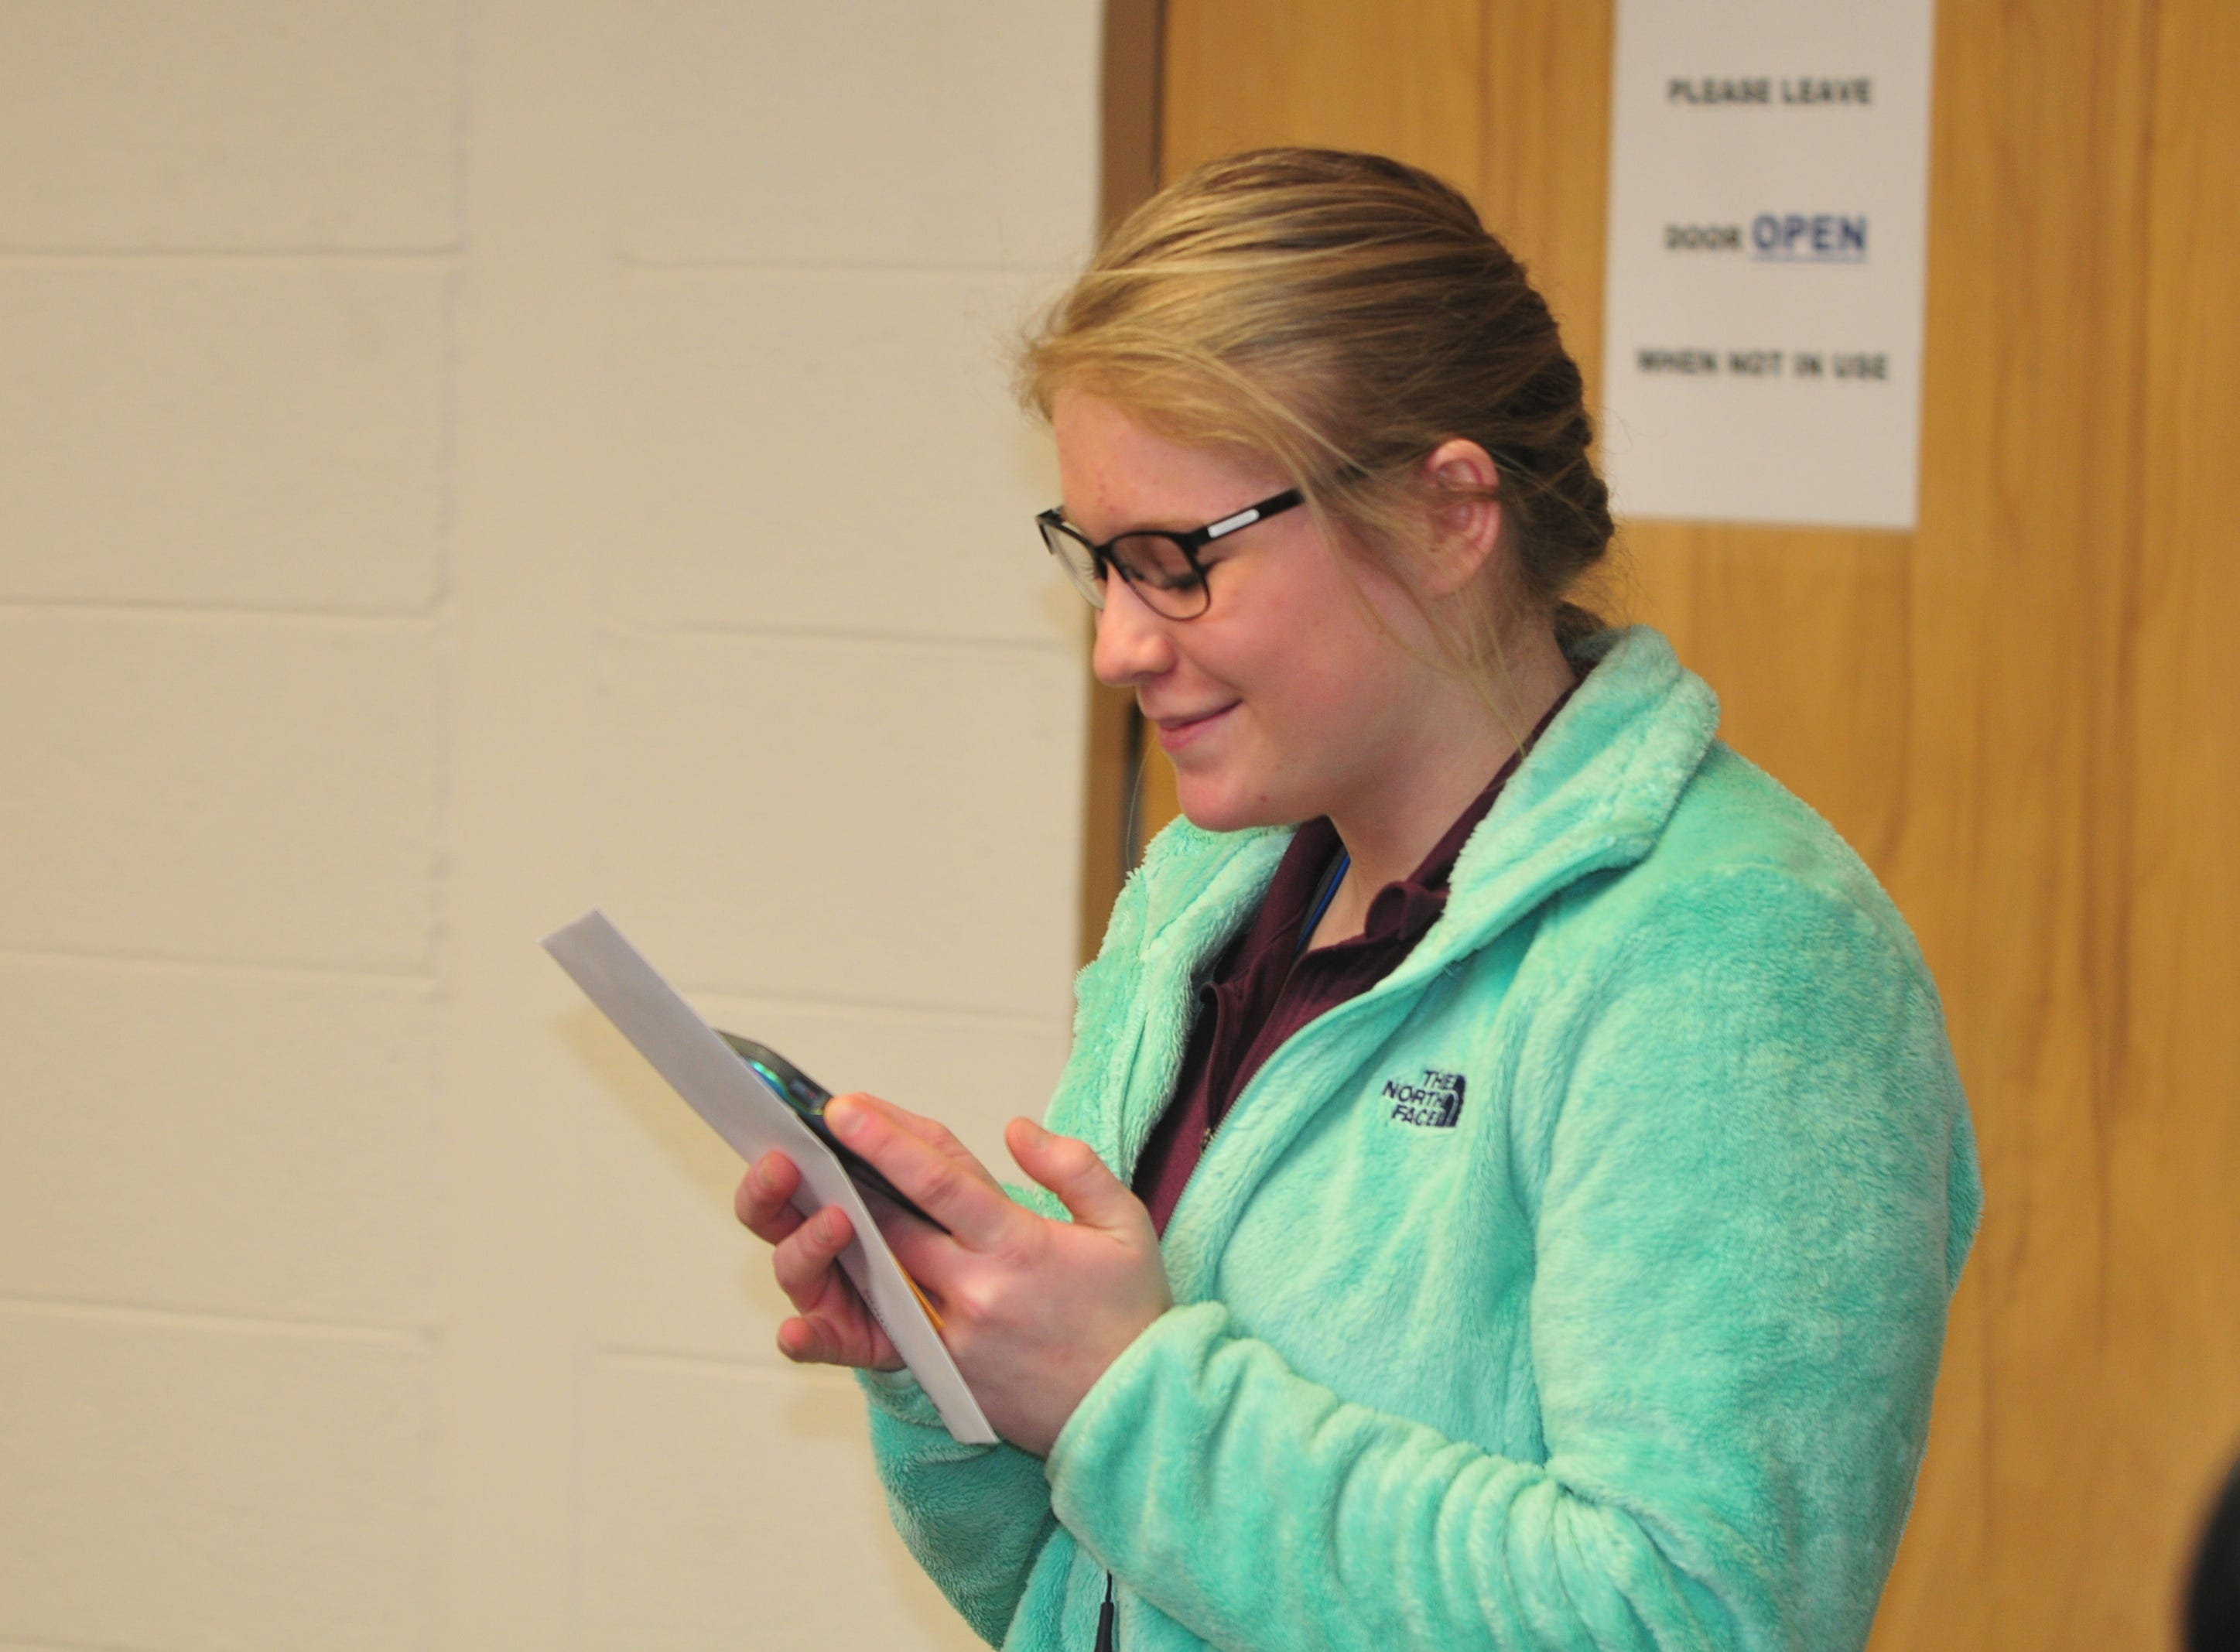 Centerville High School senior Molly Coomes calls her father after learning that she is a recipient of the Wayne County Foundation's Lily Endowment Community Scholarship at Centerville High School Tuesday, Dec. 11, 2018.